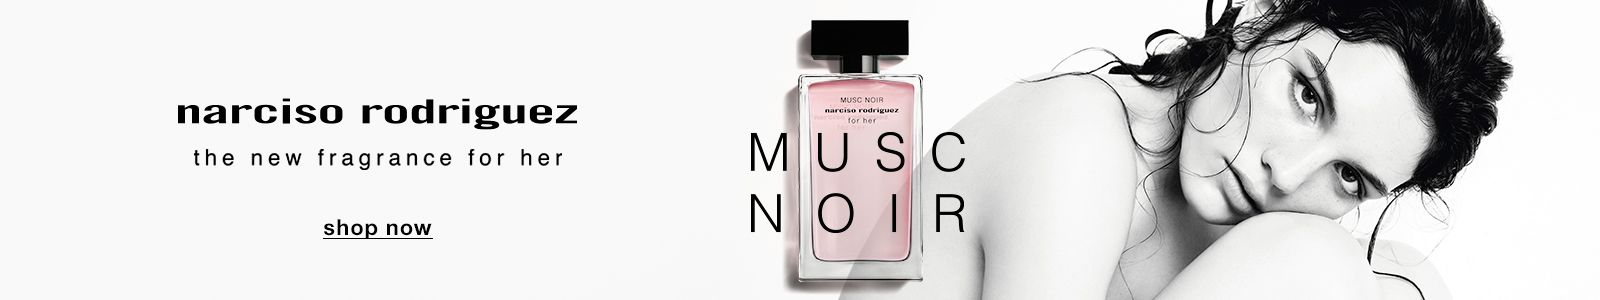 narciso rodriguez, the new fragrance for her